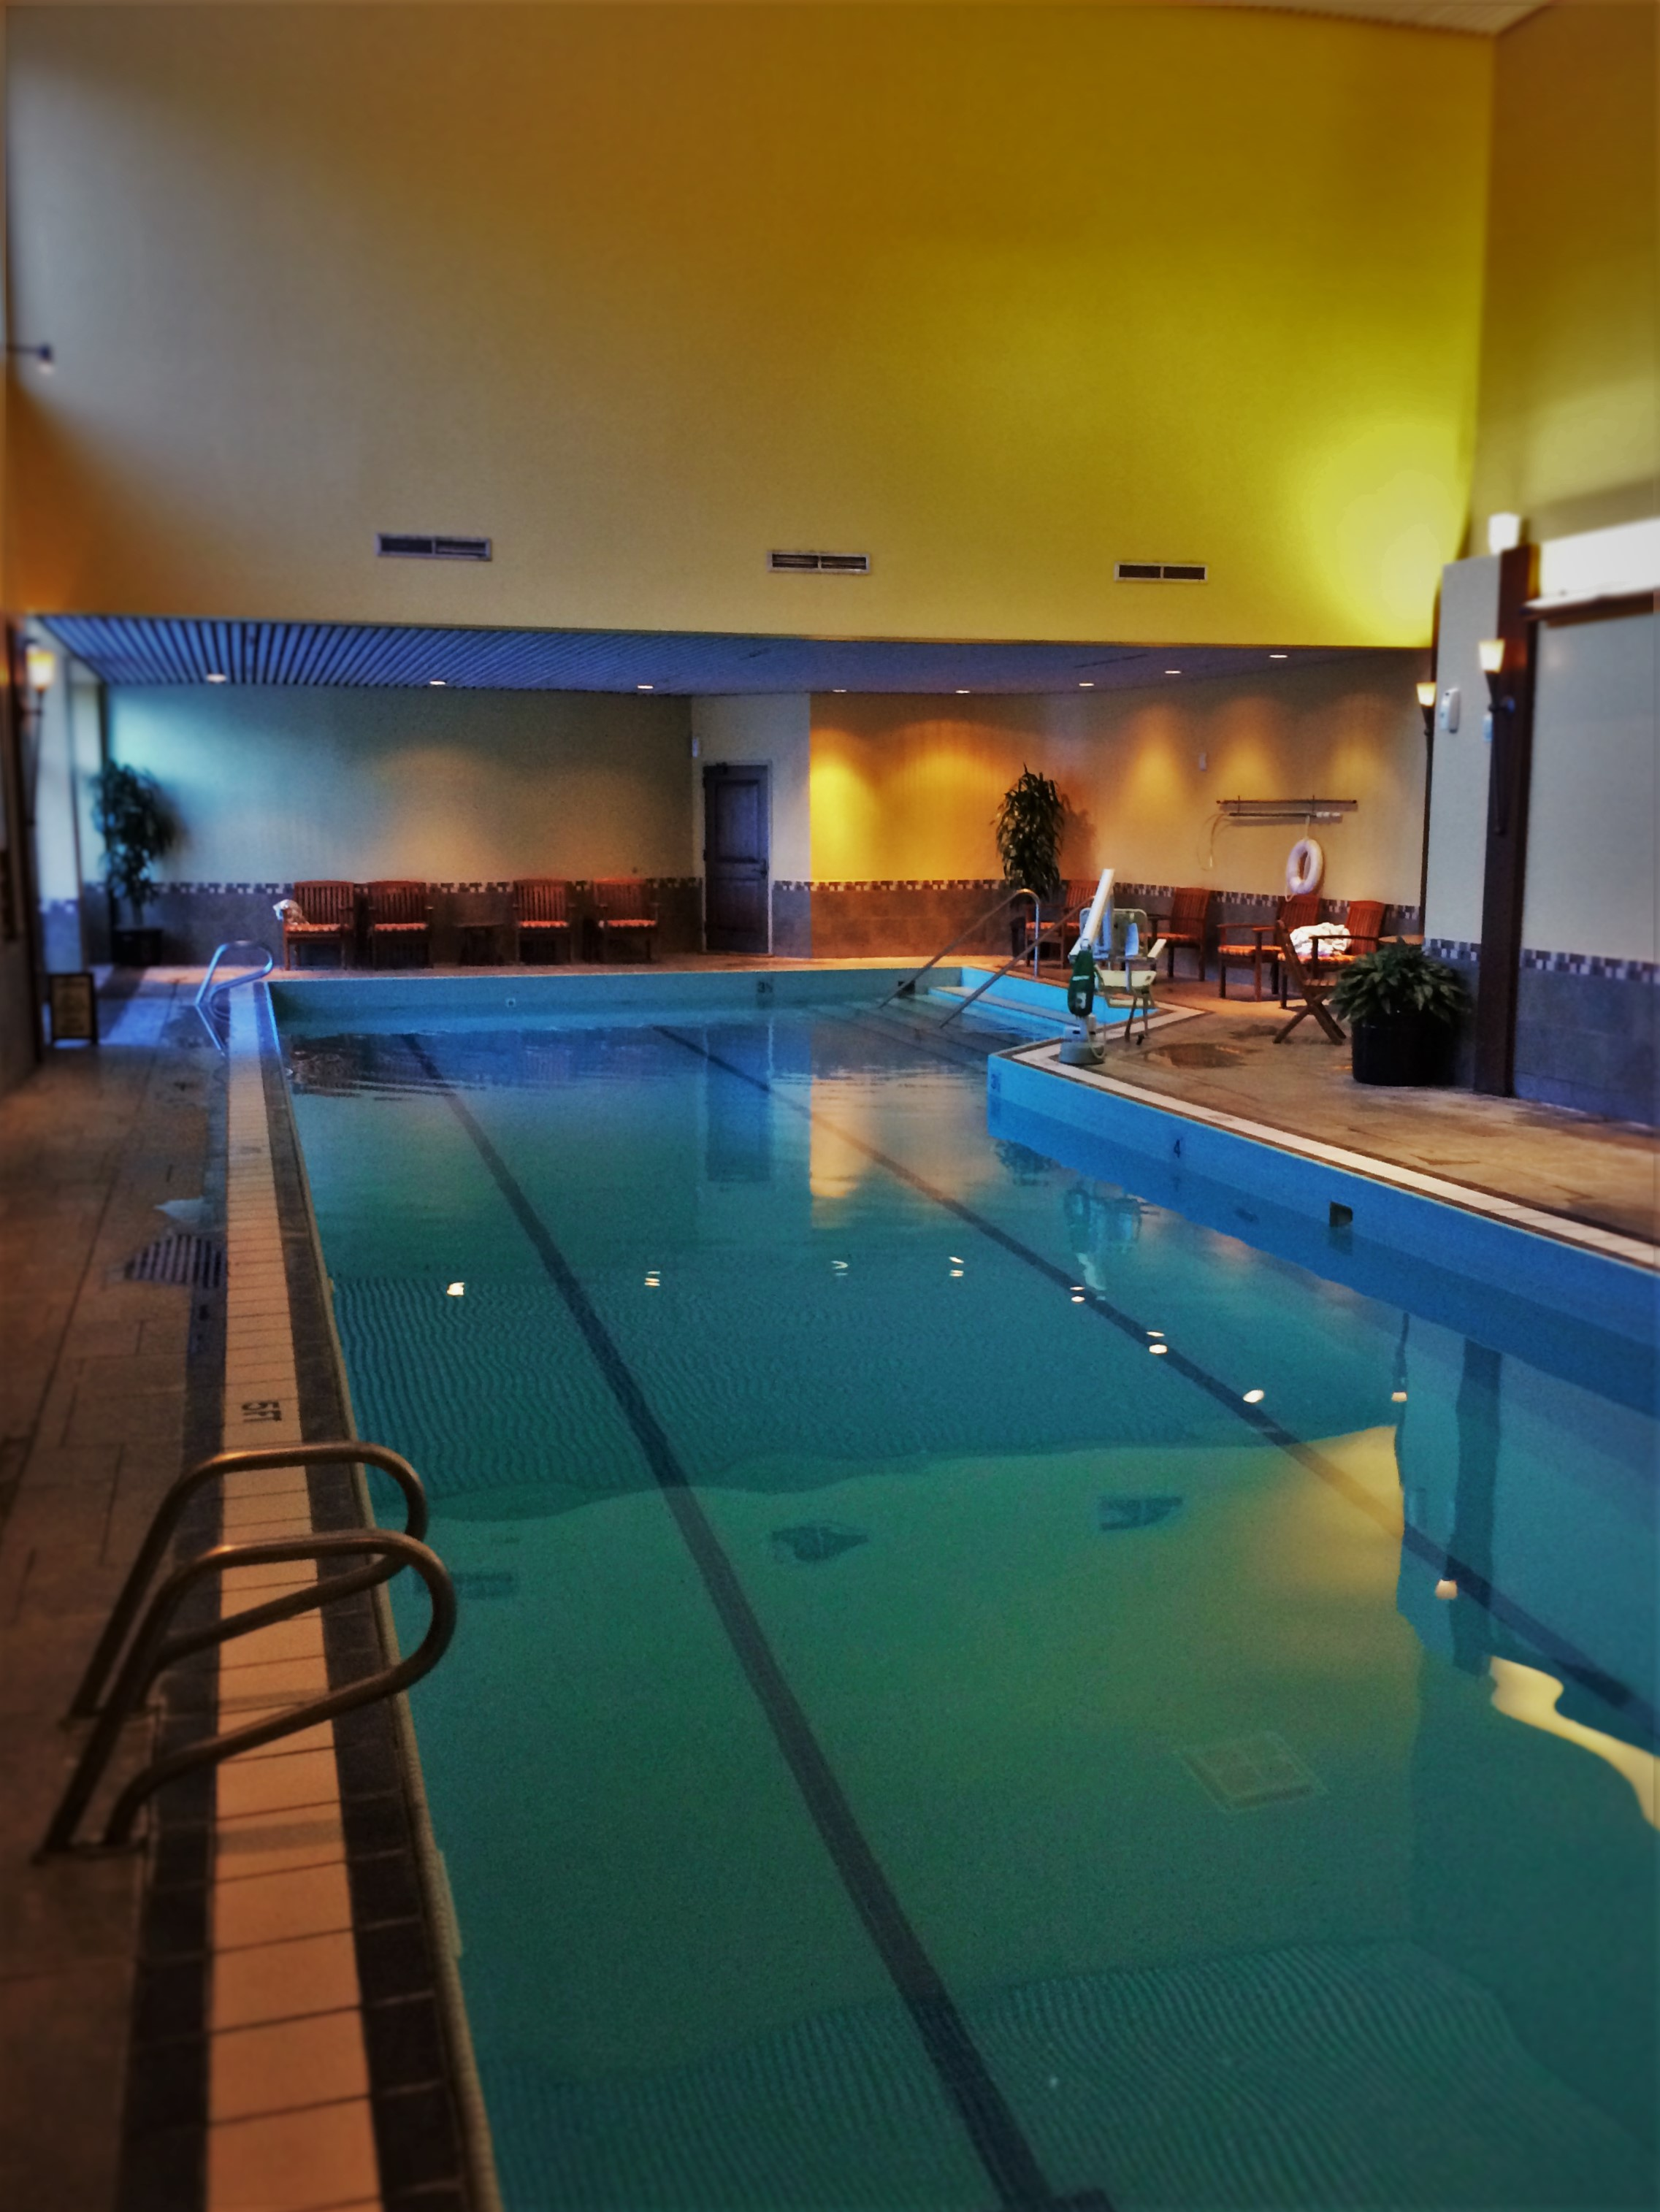 Denver Family Travel The Inverness Hotel 2traveldads Approved